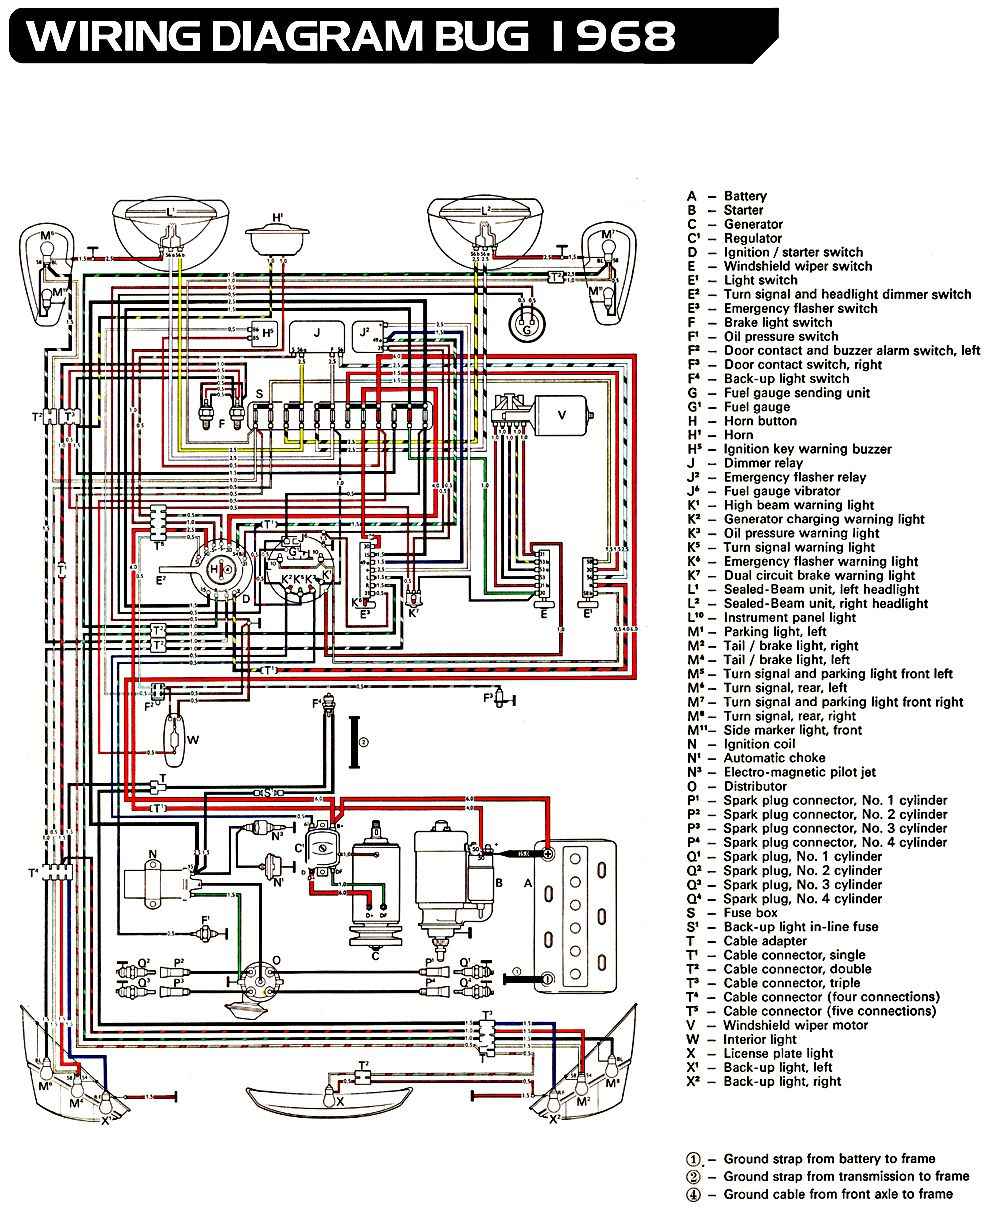 Vw Bug Ignition Wiring Diagram - 73 vw wiring diagram free ... Basic Ac Wiring Diagrams Vw Beetle on